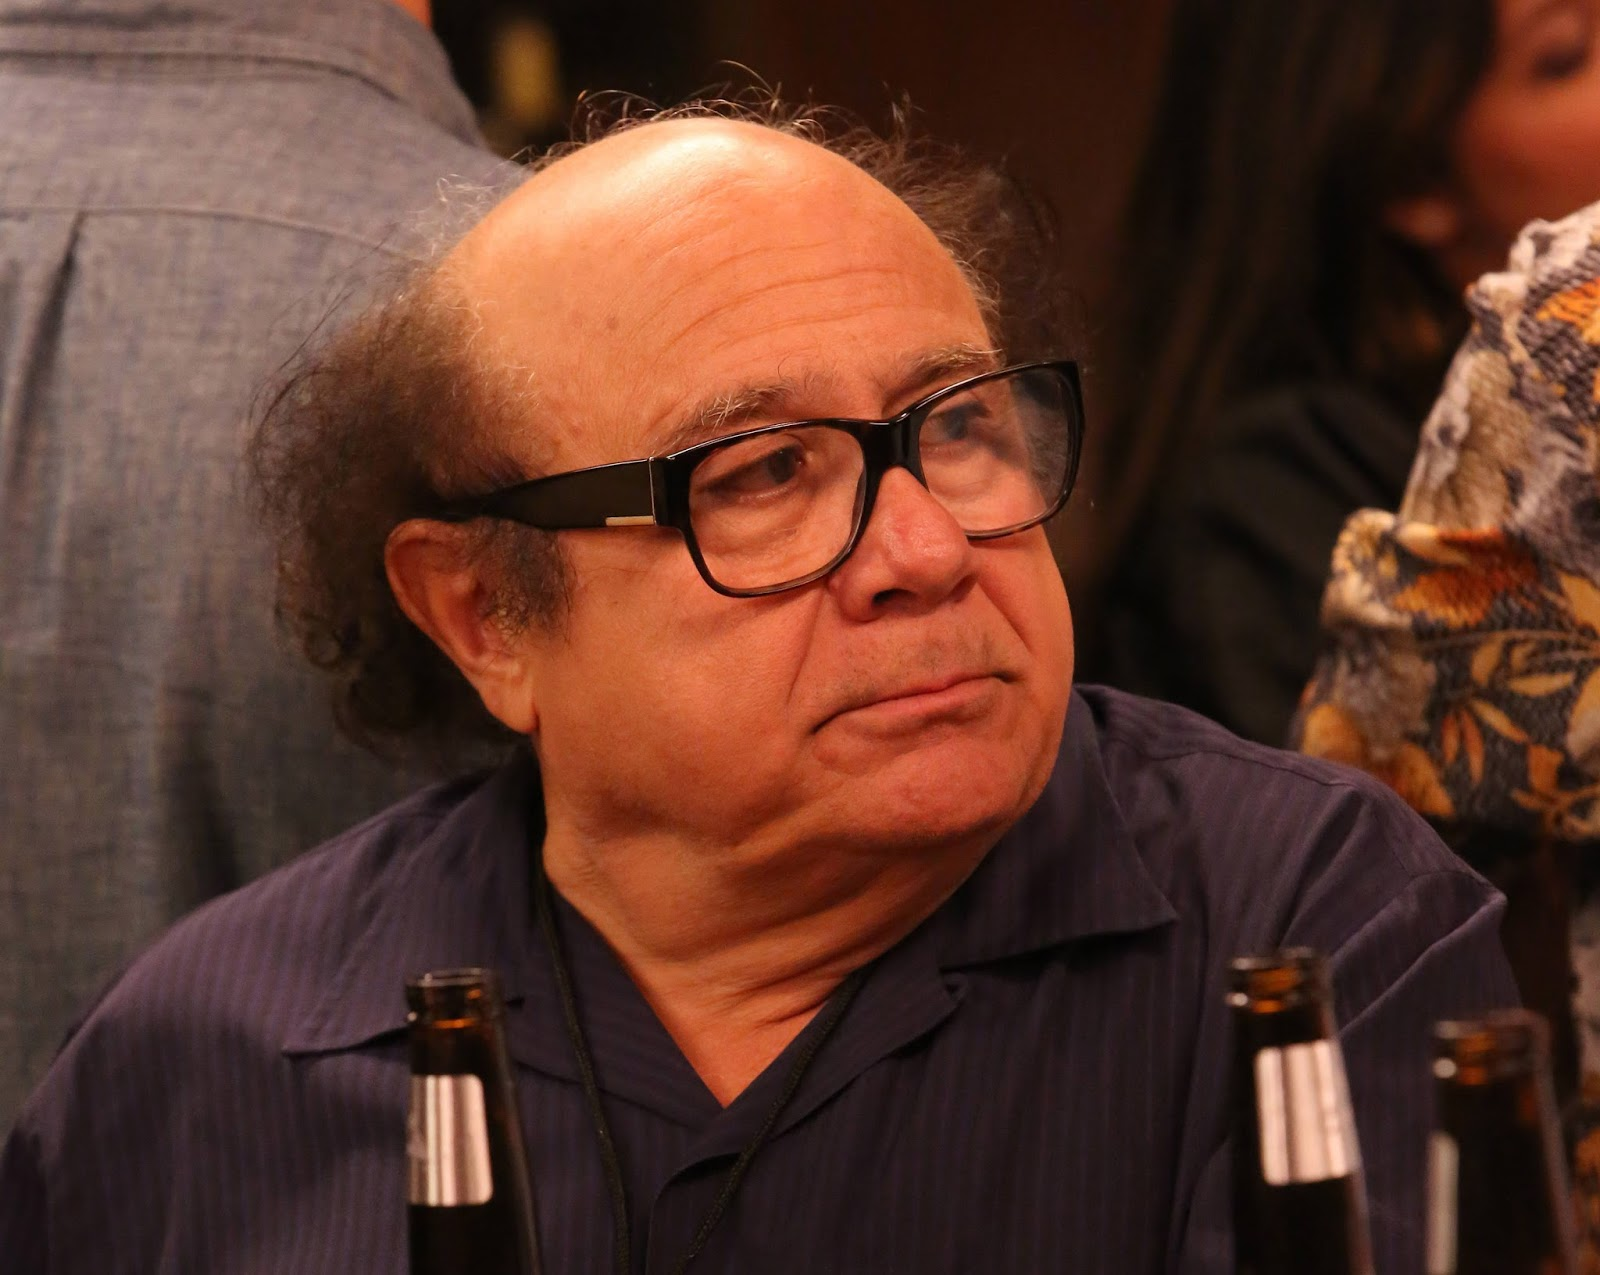 Danny de Vito broke up with his wife after 30 years of marriage 09.10.2012 9